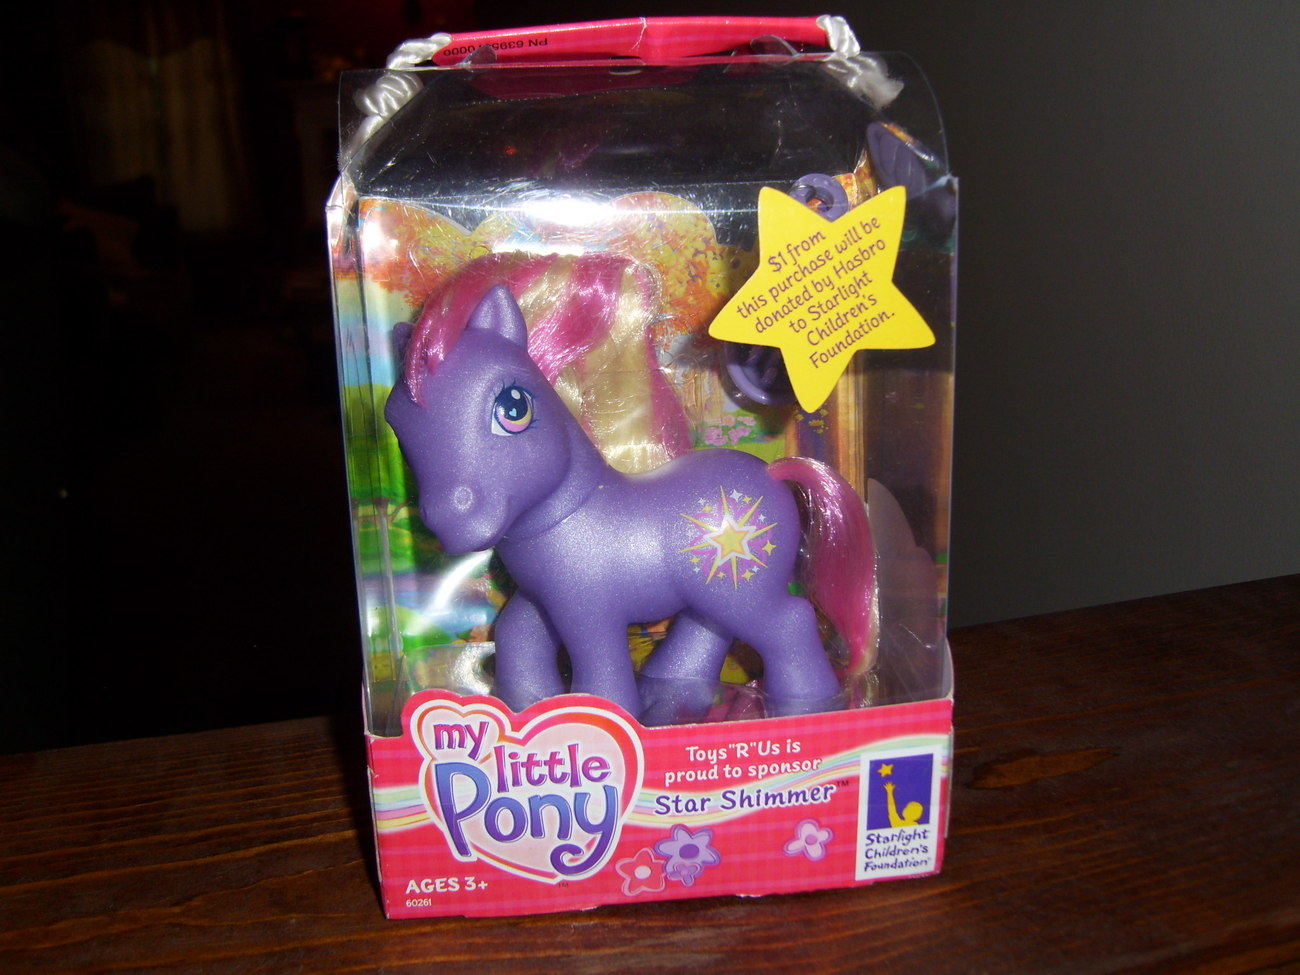 My Little Pony G3 MIB Star Shimmer